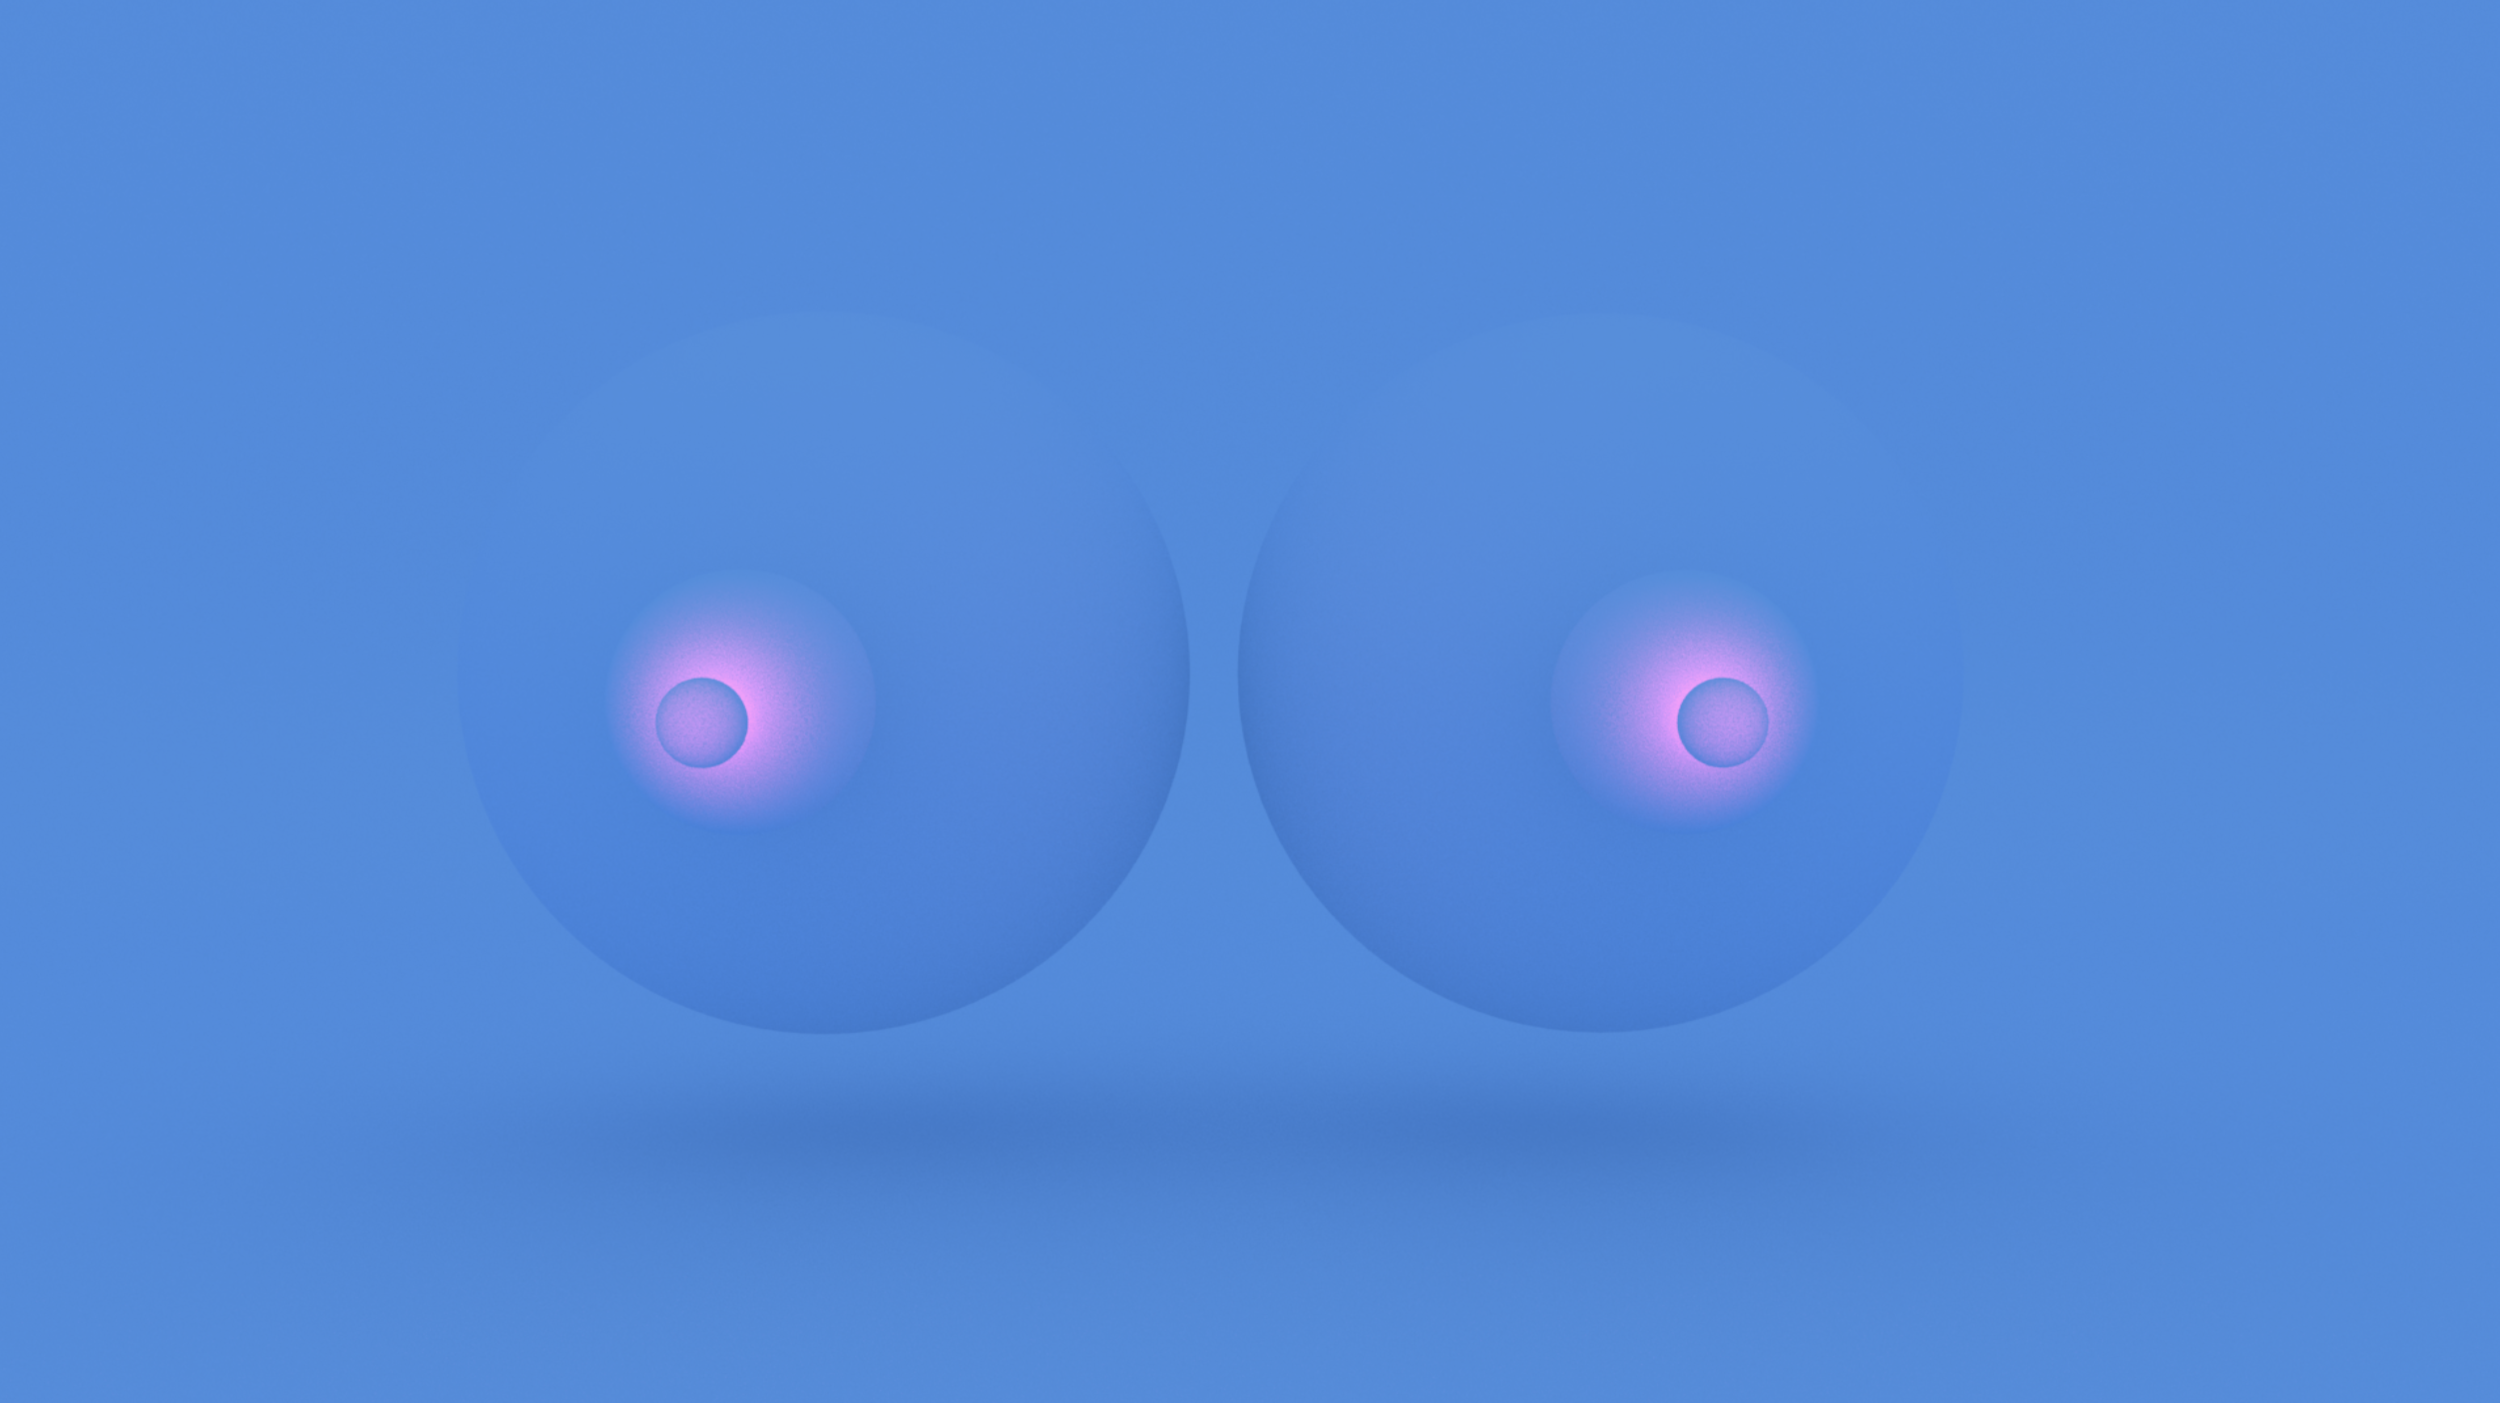 birth_taxfreefilm_film_movie_personal_project_design_motion_animation_blue_colors_3d